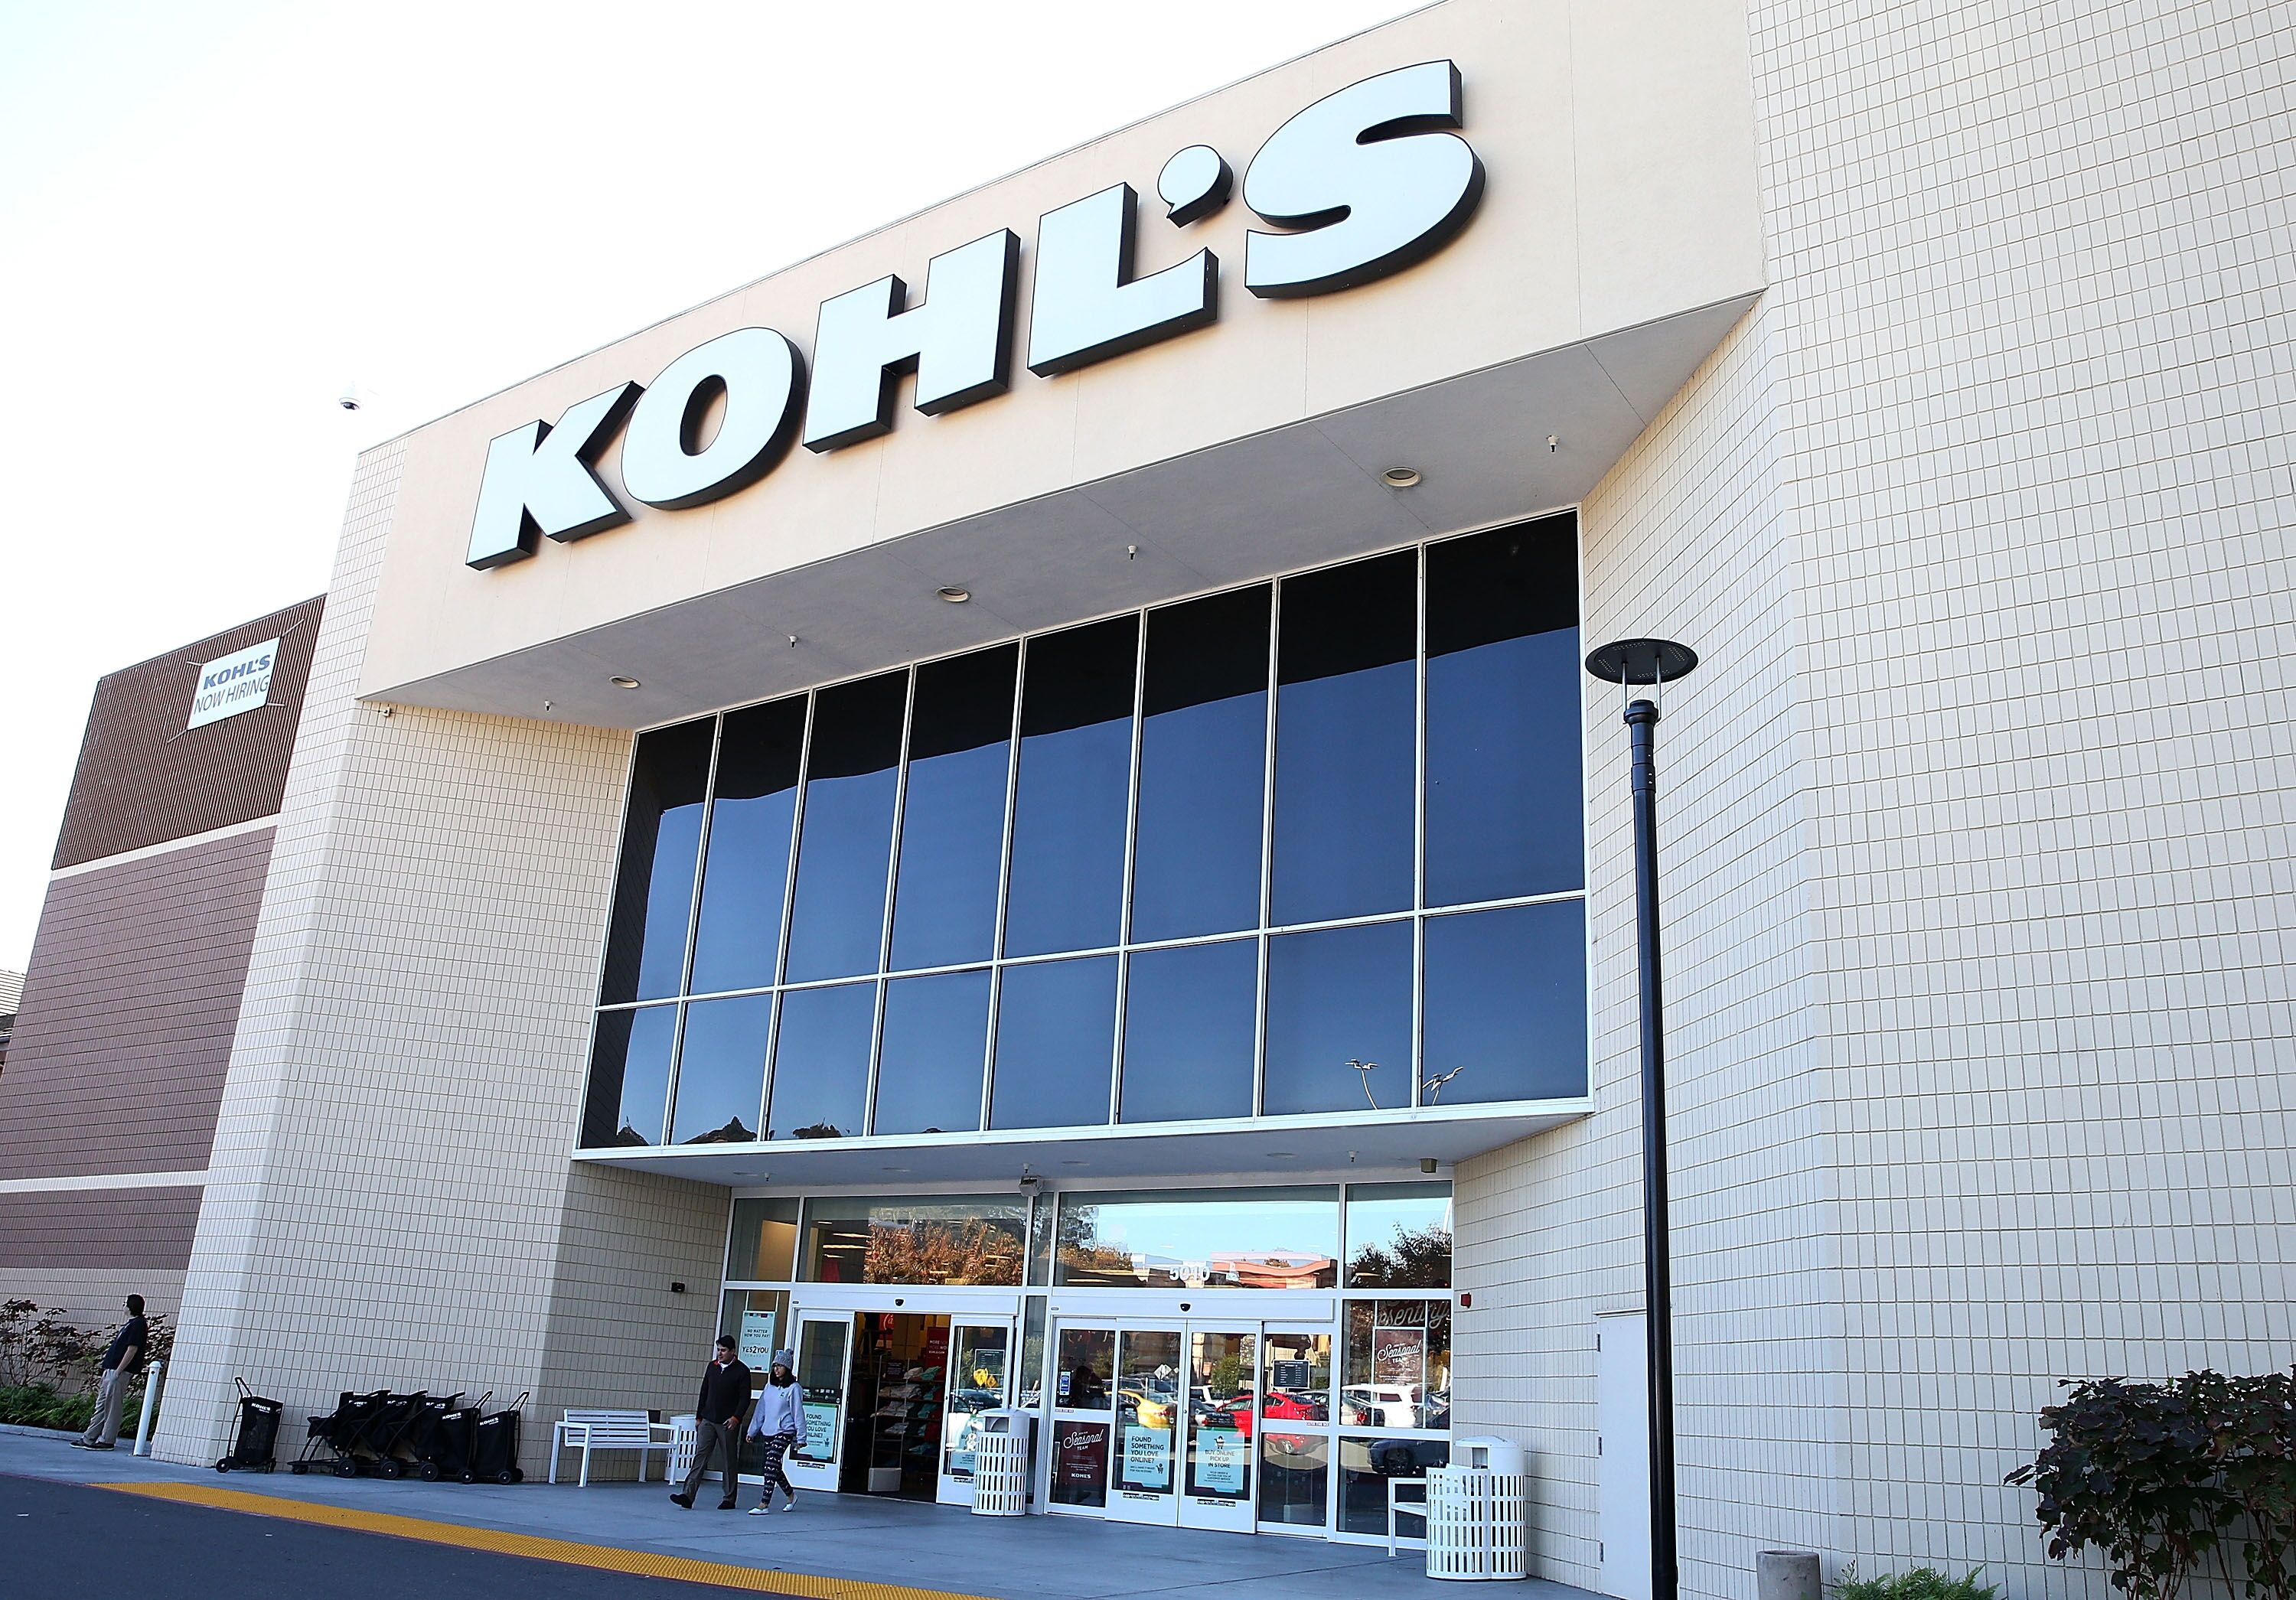 New Year's Eve store hours 2016: What time is Kohl's open?